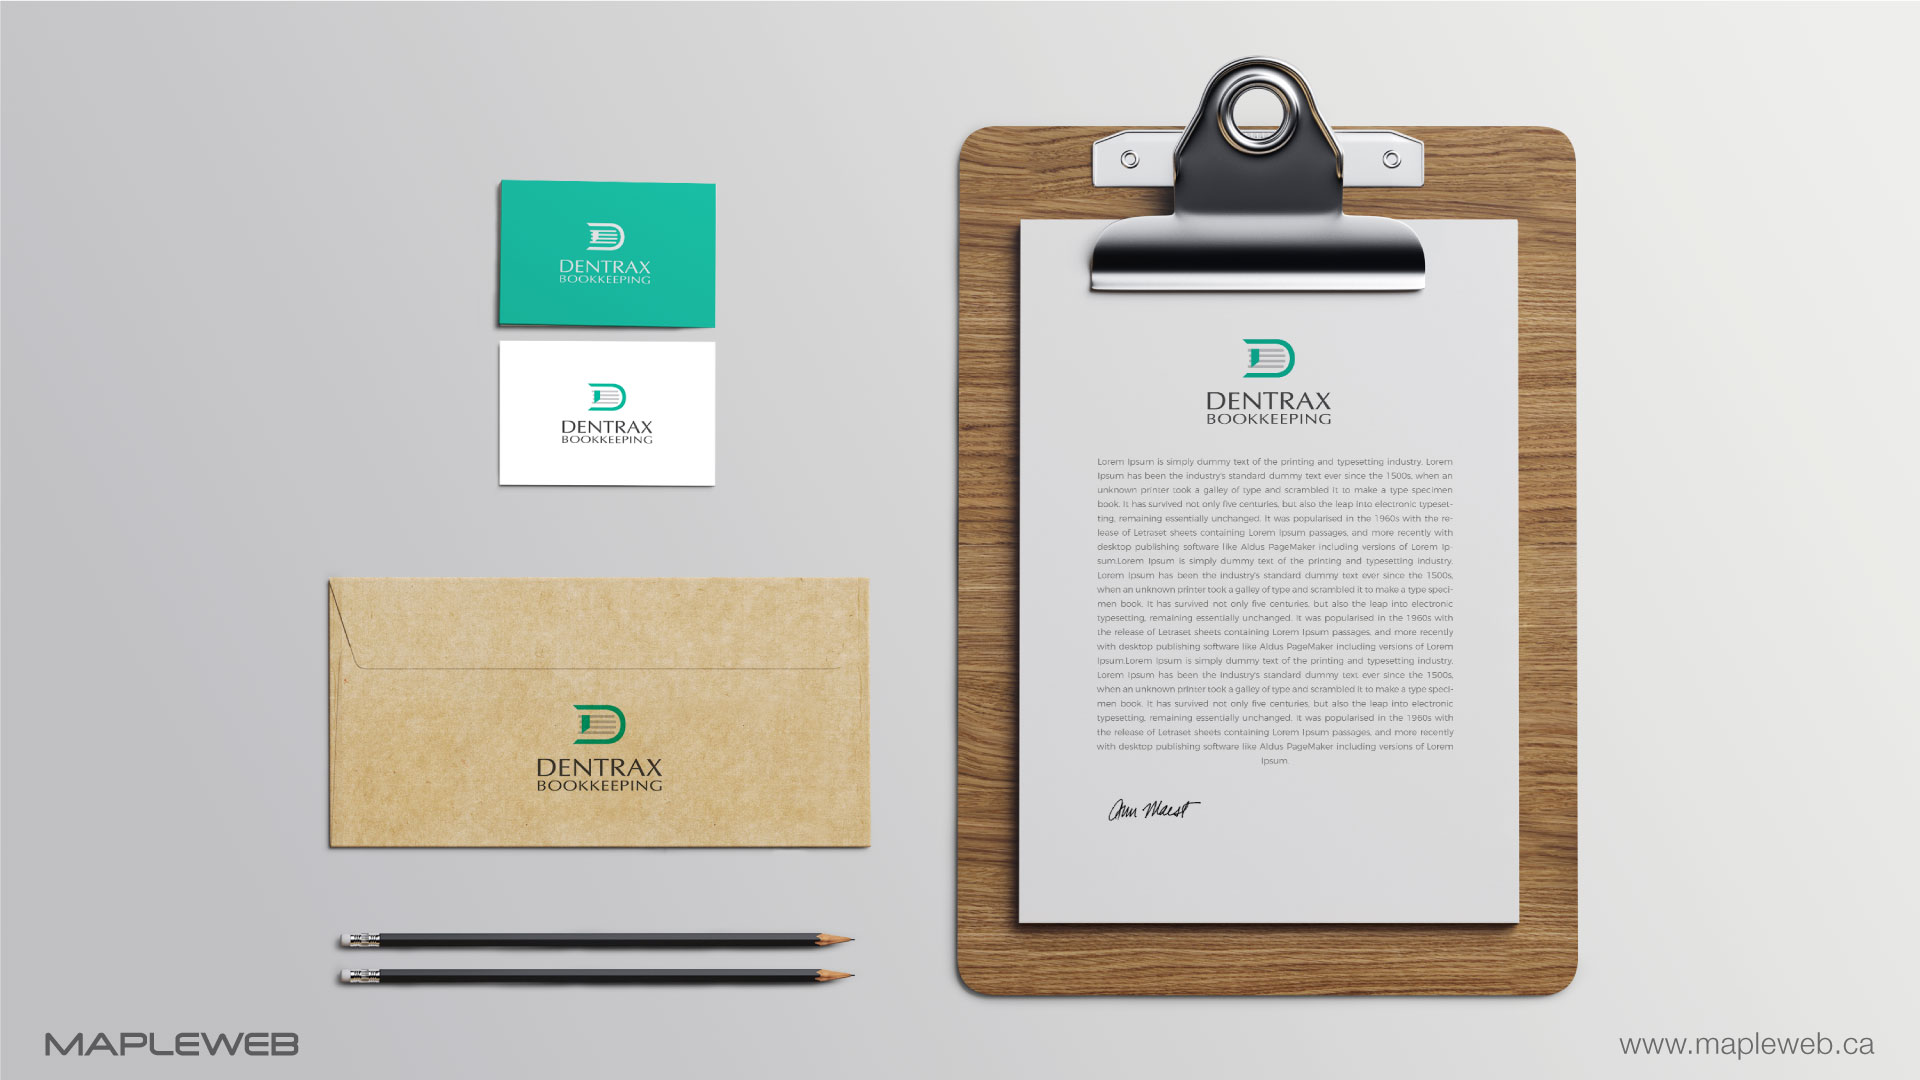 dentraxbookkeeping-brand-logo-design-by-mapleweb-vancouver-canada-staionery-mock